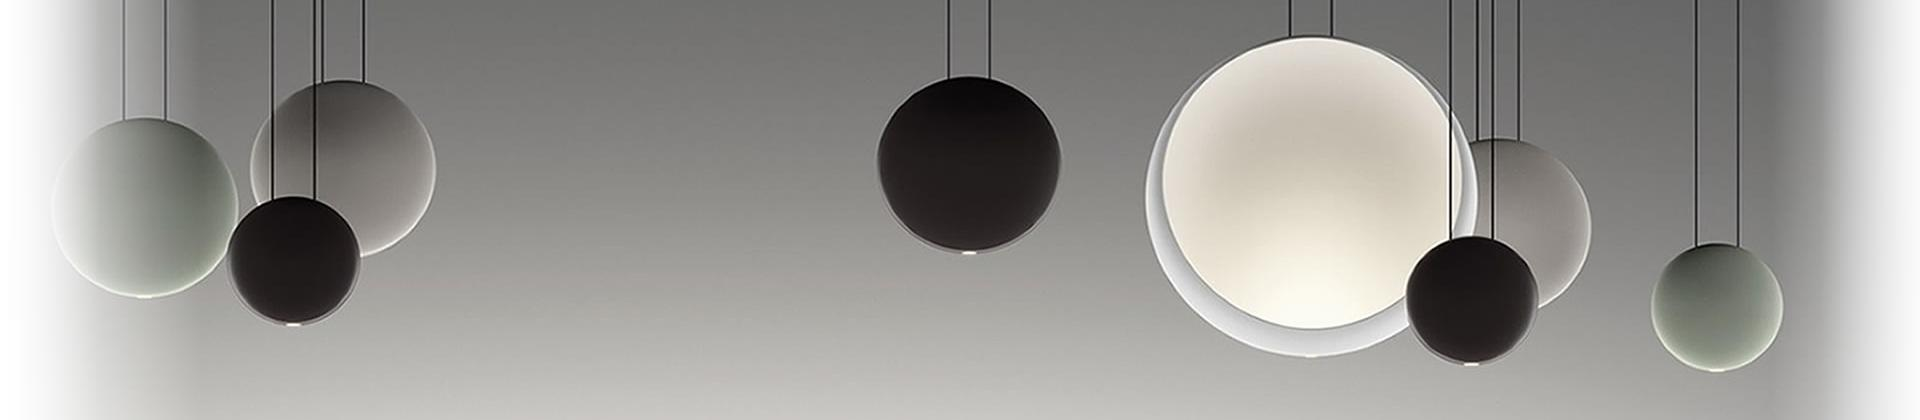 Design Lamps Wireflow Vibia designed by Arik Levy